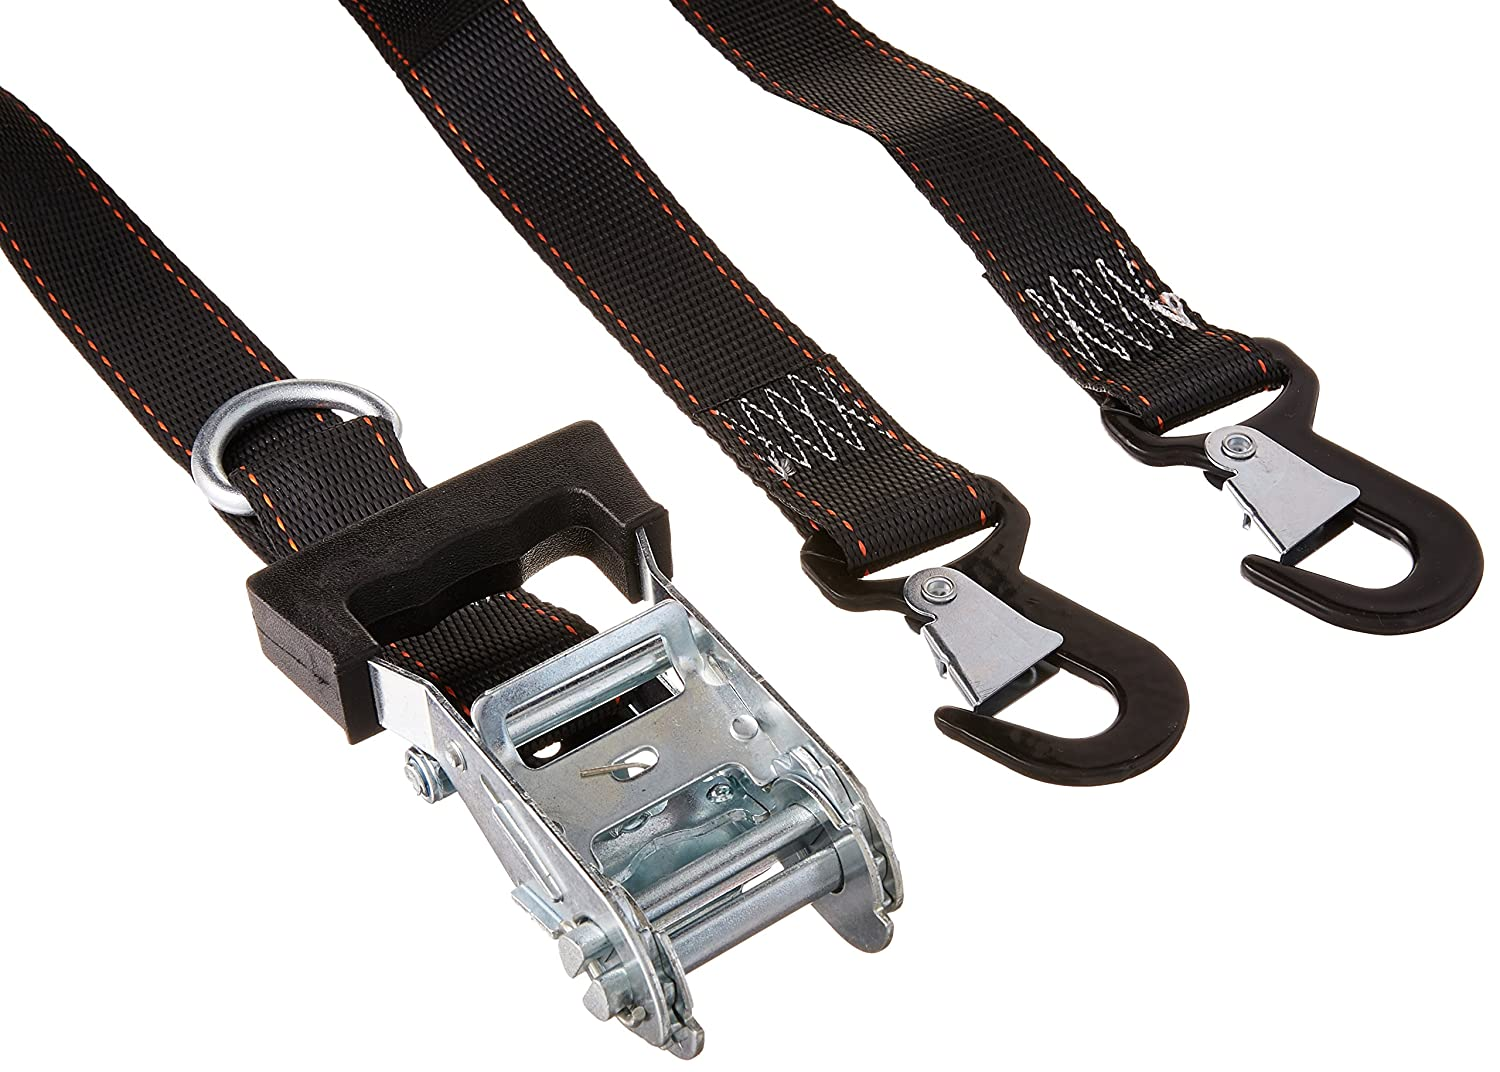 Pack of 2 Keeper 05723 1 1//2 by 8 Heavy-Duty Motorcycle and ATV Tie Down